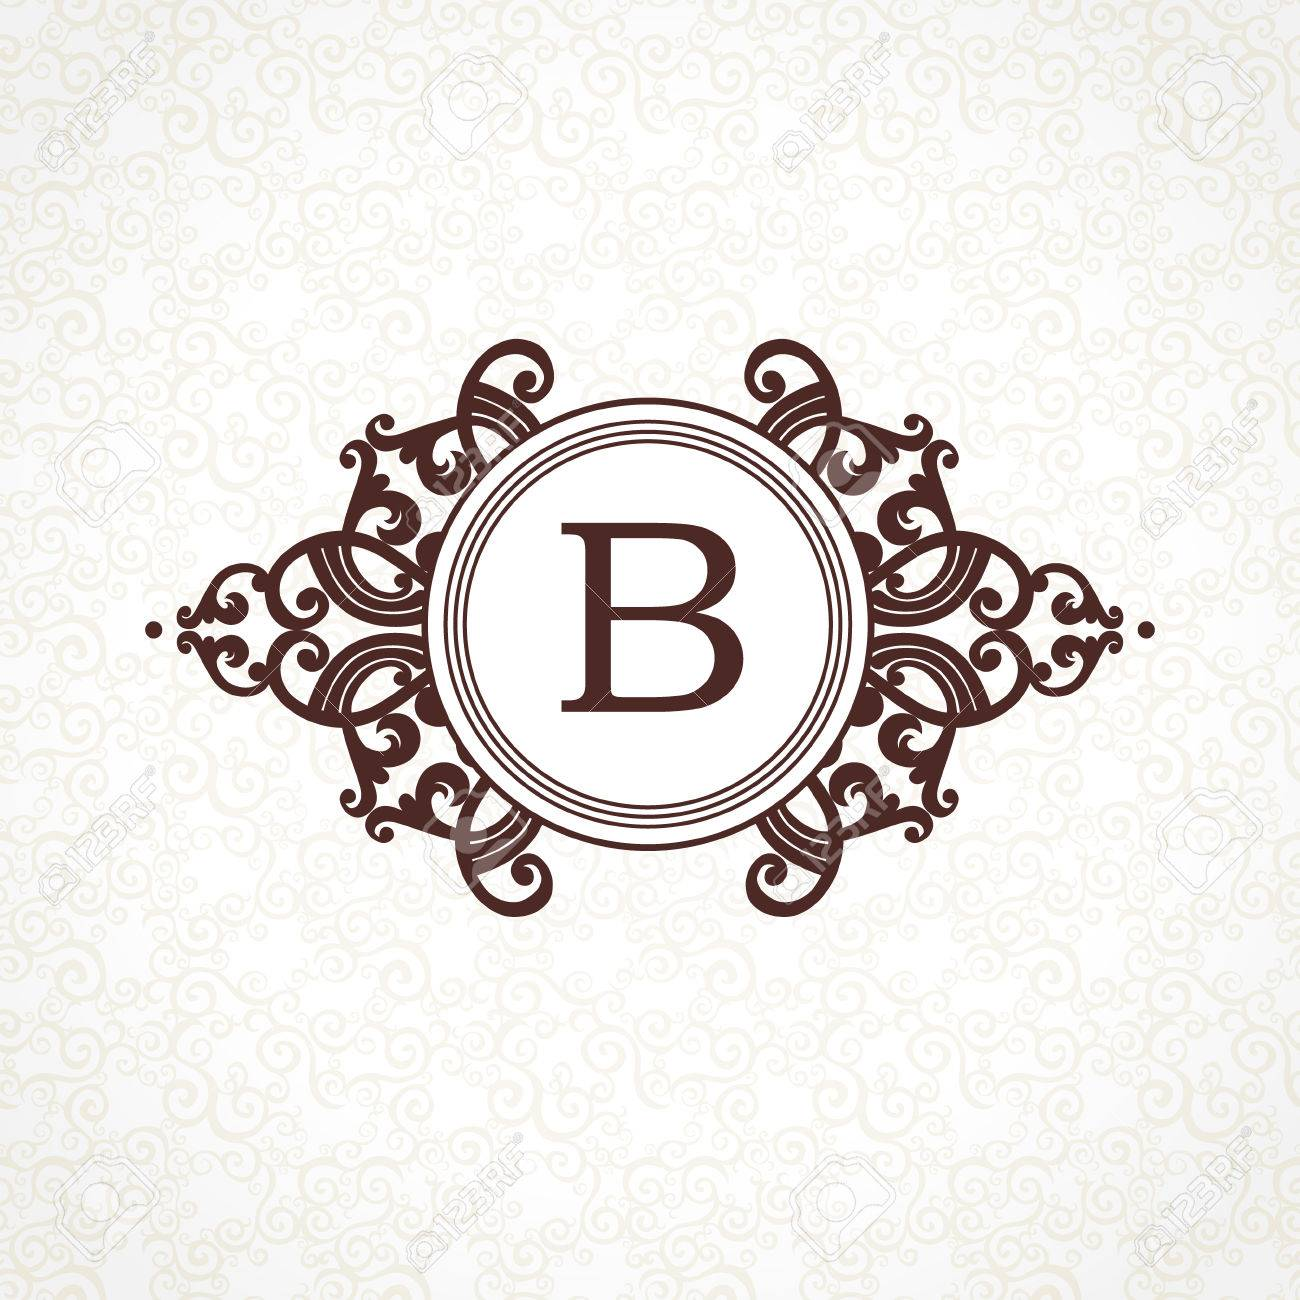 Wedding invitation symbols picture ideas references wedding invitation symbols wedding invitation company names wedding invitation symbols clip art vector template in victorian biocorpaavc Image collections